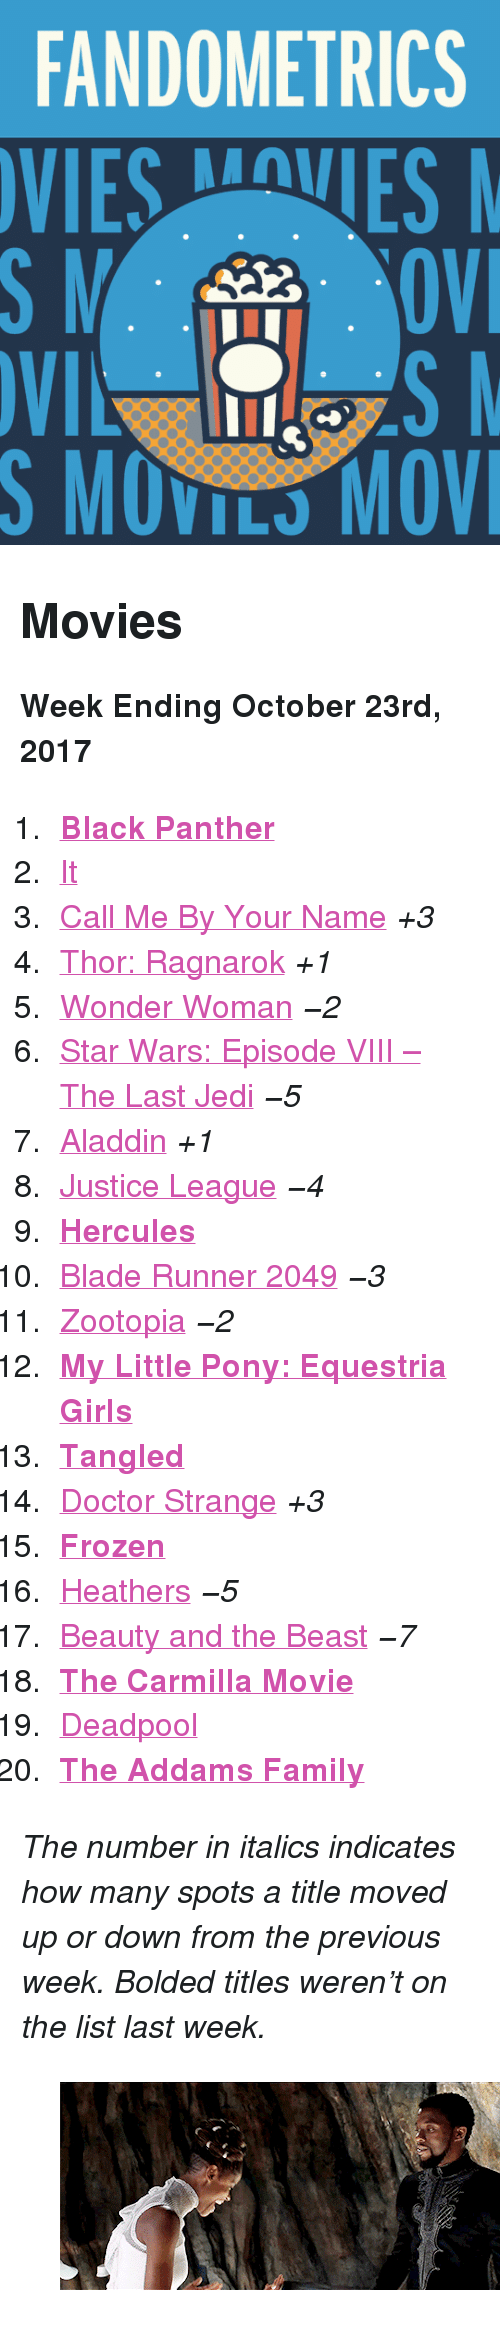 """My Little Pony: FANDOMETRICS  VIESVES  S MOVILS MOV <h2>Movies</h2><p><b>Week Ending October 23rd, 2017</b></p><ol><li><a href=""""http://tumblr.co/613687A7g""""><b>Black Panther</b></a></li><li><a href=""""http://tumblr.co/613787A79"""">It</a></li><li><a href=""""http://tumblr.co/613987A7c"""">Call Me By Your Name</a><i>+3</i></li><li><a href=""""http://tumblr.co/613087A7Y"""">Thor: Ragnarok</a><i>+1</i></li><li><a href=""""http://tumblr.co/613187A7l"""">Wonder Woman</a><i><i>−2</i></i></li><li><a href=""""http://tumblr.co/613287A7m"""">Star Wars: Episode VIII – The Last Jedi</a><i><i>−5</i></i></li><li><a href=""""http://tumblr.co/613387A7W"""">Aladdin</a><i>+1</i></li><li><a href=""""http://tumblr.co/613487A7o"""">Justice League</a><i><i>−4</i></i></li><li><a href=""""http://tumblr.co/613587A7U""""><b>Hercules</b></a></li><li><a href=""""http://tumblr.co/613687A7q"""">Blade Runner 2049</a><i><i>−3</i></i></li><li><a href=""""http://tumblr.co/613787A7S"""">Zootopia</a><i><i>−2</i></i></li><li><a href=""""http://tumblr.co/613887A7s""""><b>My Little Pony: Equestria Girls</b></a></li><li><a href=""""http://tumblr.co/613087A7Q""""><b>Tangled</b></a></li><li><a href=""""http://tumblr.co/613287A7a"""">Doctor Strange</a><i>+3</i></li><li><a href=""""http://tumblr.co/613387A7x""""><b>Frozen</b></a></li><li><a href=""""http://tumblr.co/613487A7I"""">Heathers</a><i><i>−5</i></i></li><li><a href=""""http://tumblr.co/613587A7L"""">Beauty and the Beast</a><i><i>−7</i></i></li><li><a href=""""http://tumblr.co/613687A70""""><b>The Carmilla Movie</b></a></li><li><a href=""""http://tumblr.co/613787A7F"""">Deadpool</a></li><li><a href=""""http://tumblr.co/613887A72""""><b>The Addams Family</b></a></li></ol><p><i>The number in italics indicates how many spots a title moved up or down from the previous week. Bolded titles weren't on the list last week.</i></p><figure class=""""tmblr-full pinned-target"""" data-orig-height=""""208"""" data-orig-width=""""500"""" data-tumblr-attribution=""""blackpantherdaily:doeZI-m6lUTGGN4bxwYF7g:ZFpHte2R2A3-b""""><img src=""""https://78.media.tumblr.com/5a85dbe2c3b07c2c2aee44cd0b55a2f0/tumblr_o"""